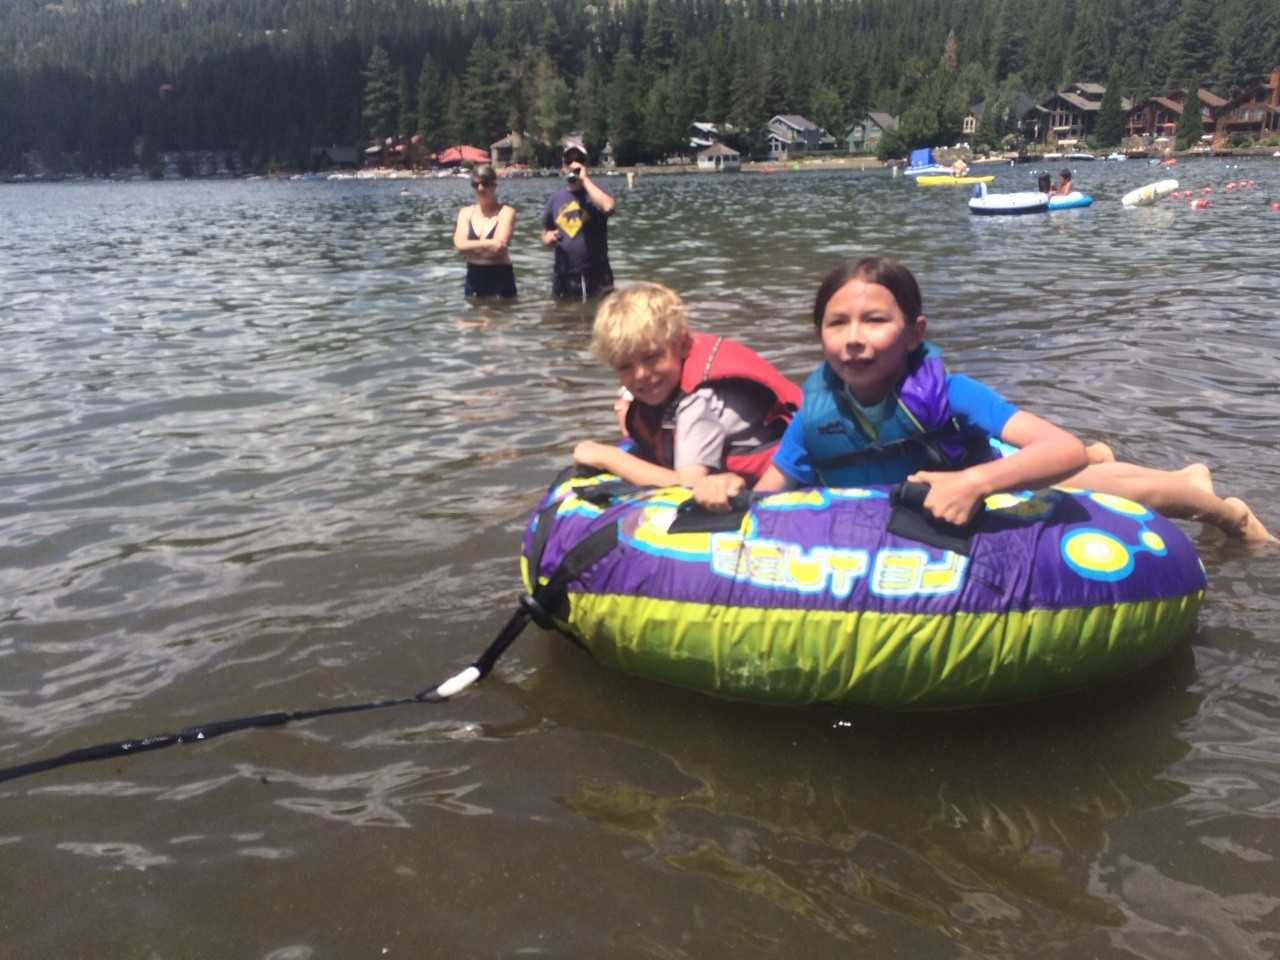 Summer at Donner Lake